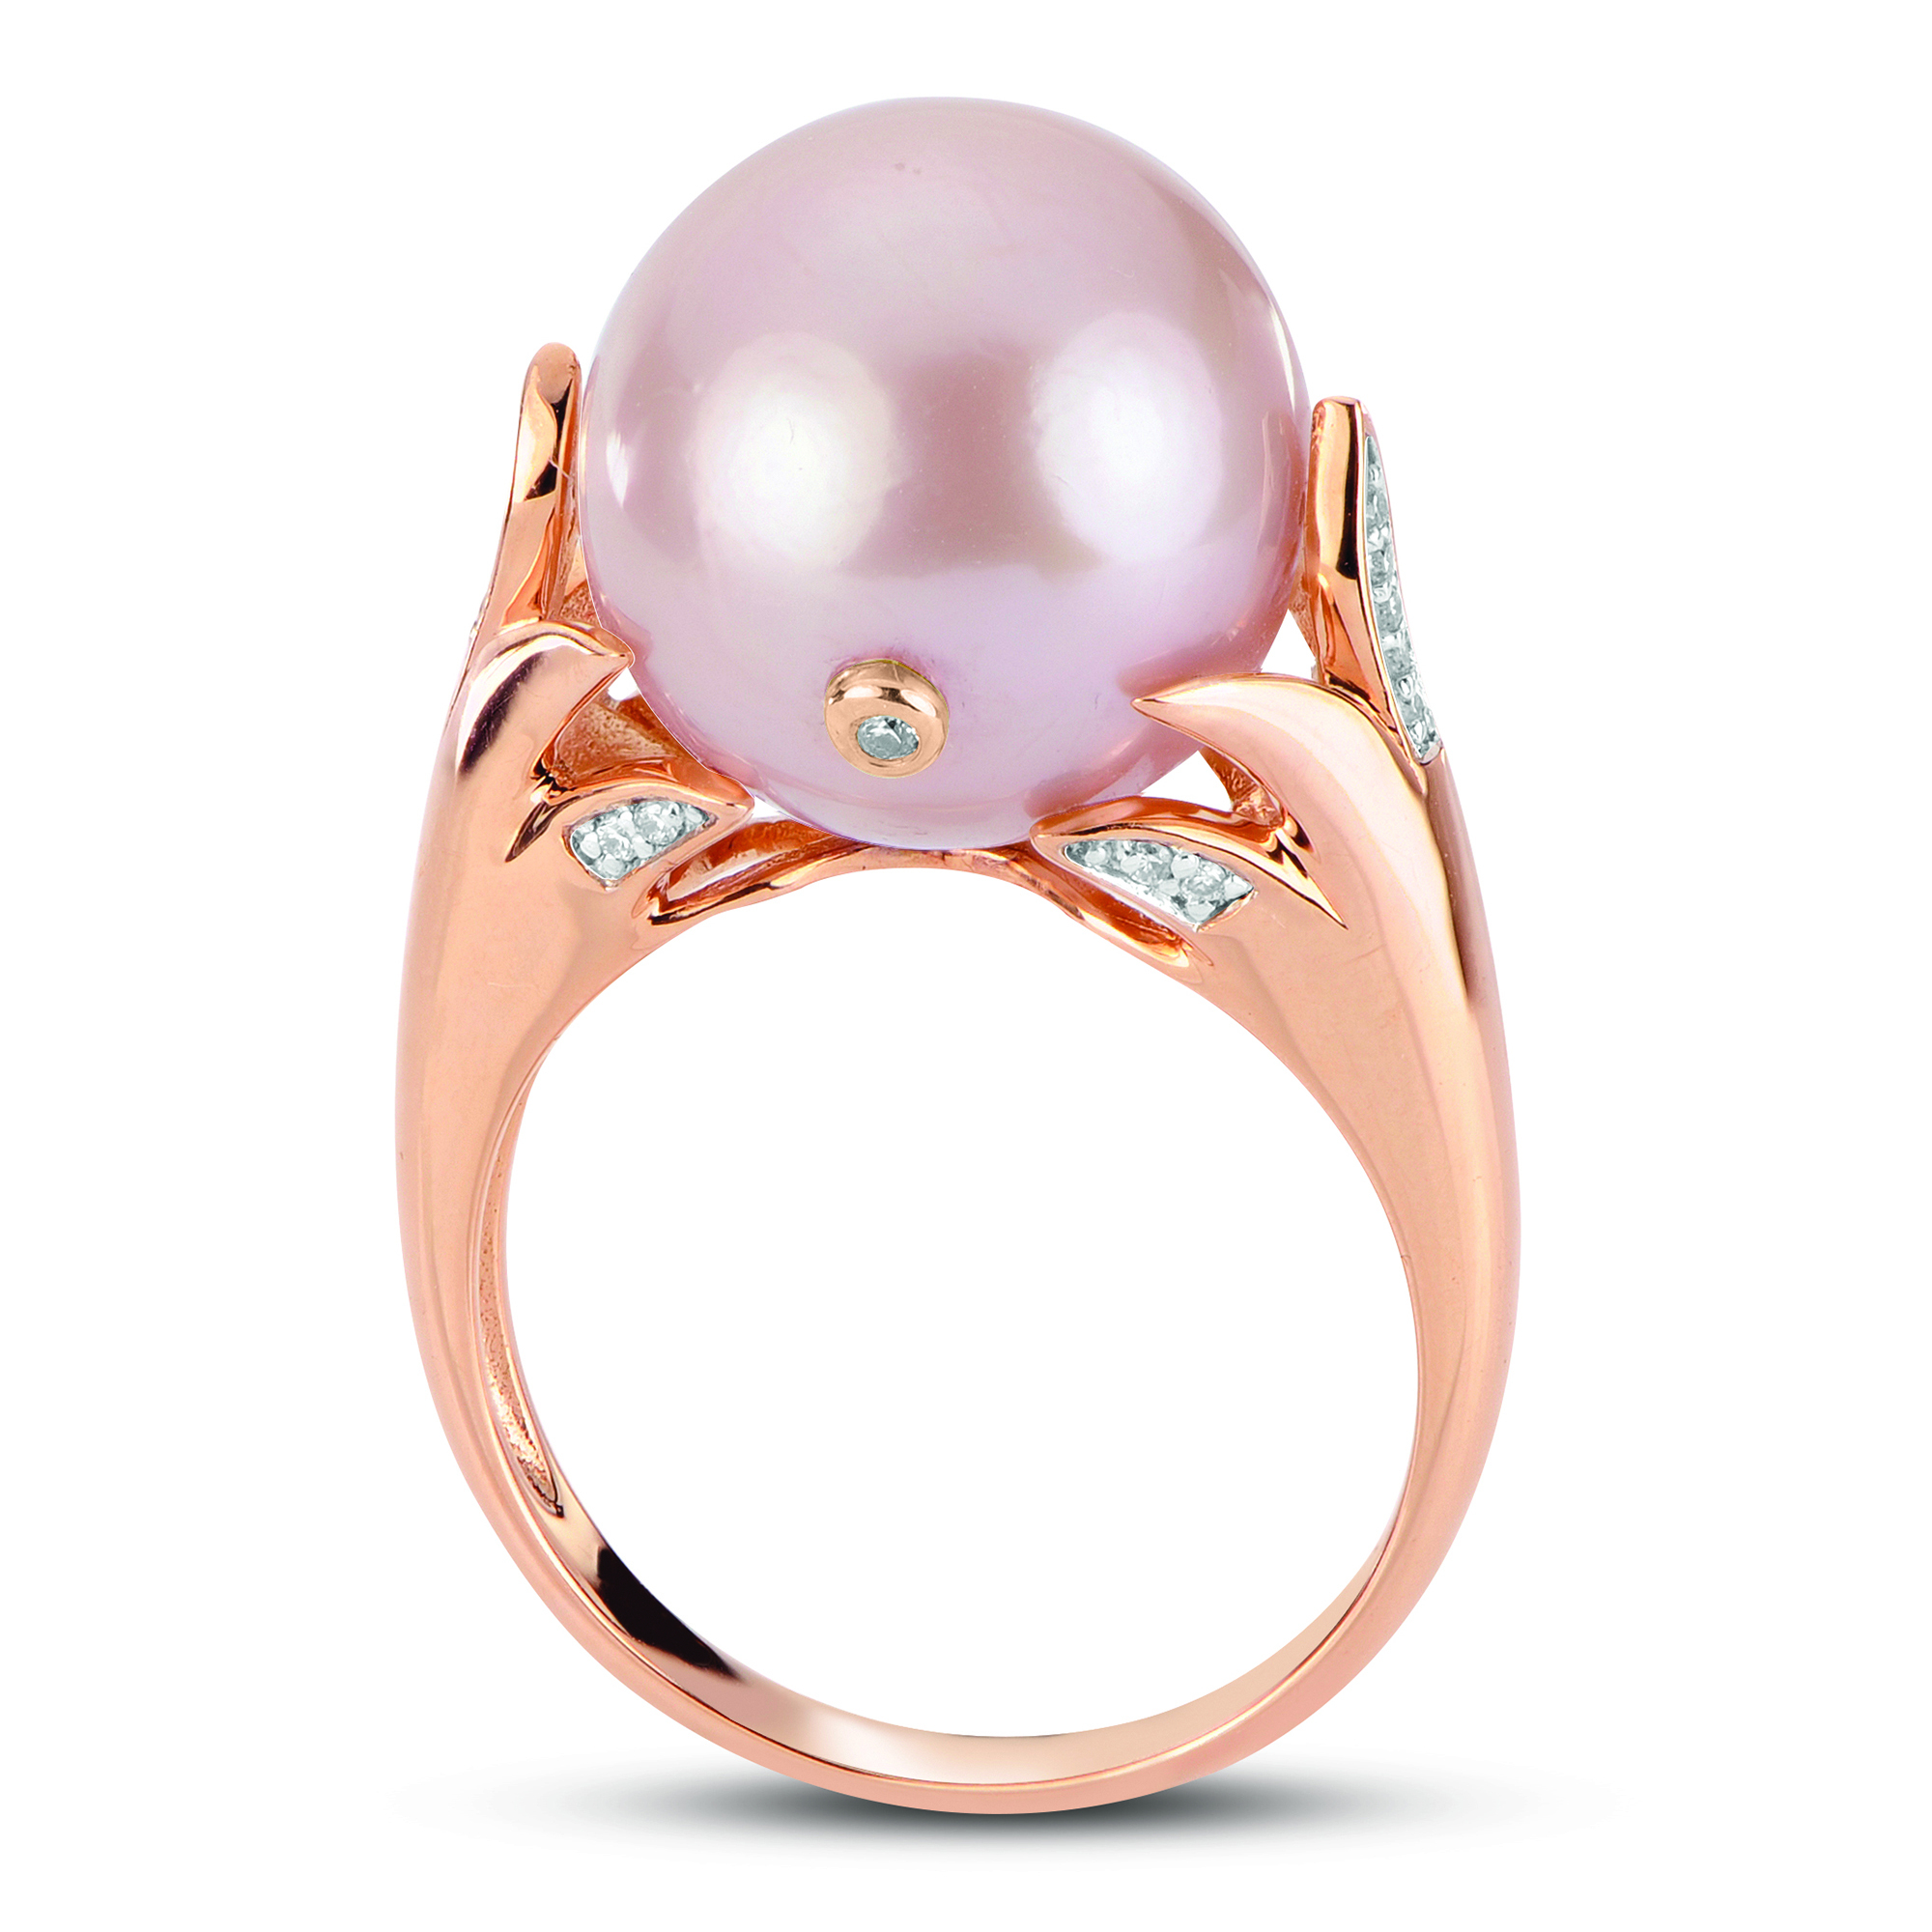 66867c036 Home > Jewelry > Rings > 14K Rose Gold Freshwater Pearl Ring. 🔍.  919948RG-510x510